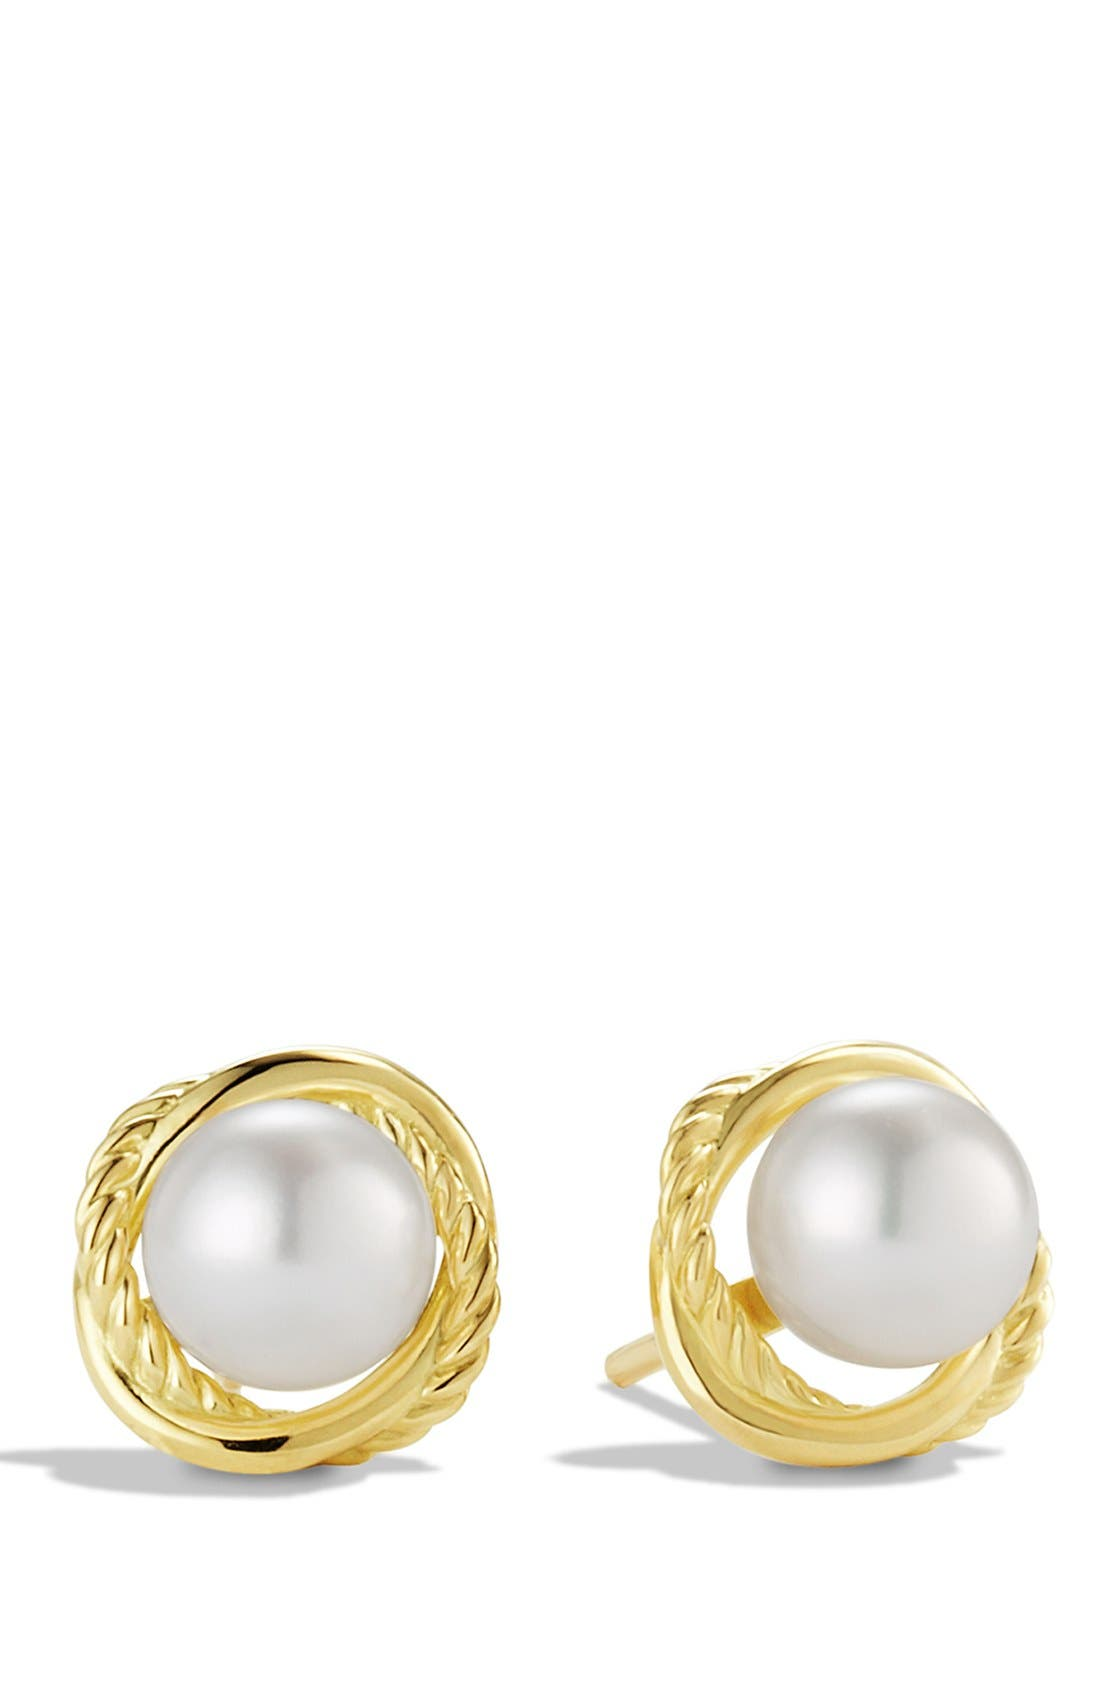 'Infinity' Earrings with Pearls in Gold,                         Main,                         color, Pearl